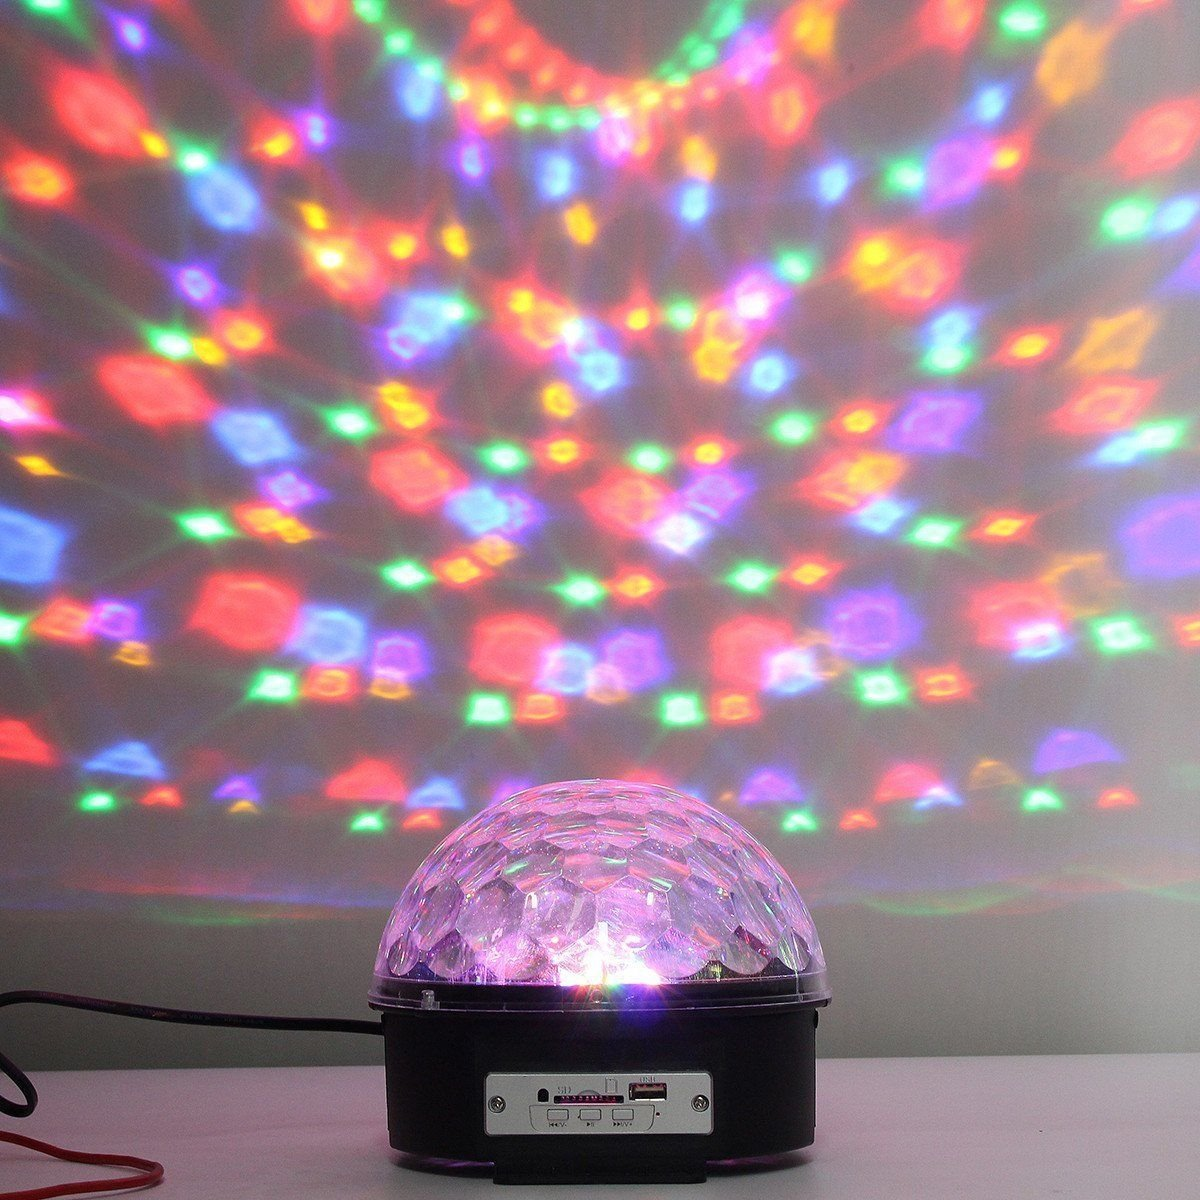 Stage Lights,Prolight LED Grystal magic ball light Led Projection Party Disco Ball DJ Lights Bluetooth Speaker Rotating Light with Remote Control Mp3 Play for KTV Xmas Party Wedding Show Club Pub by Prolight (Image #7)